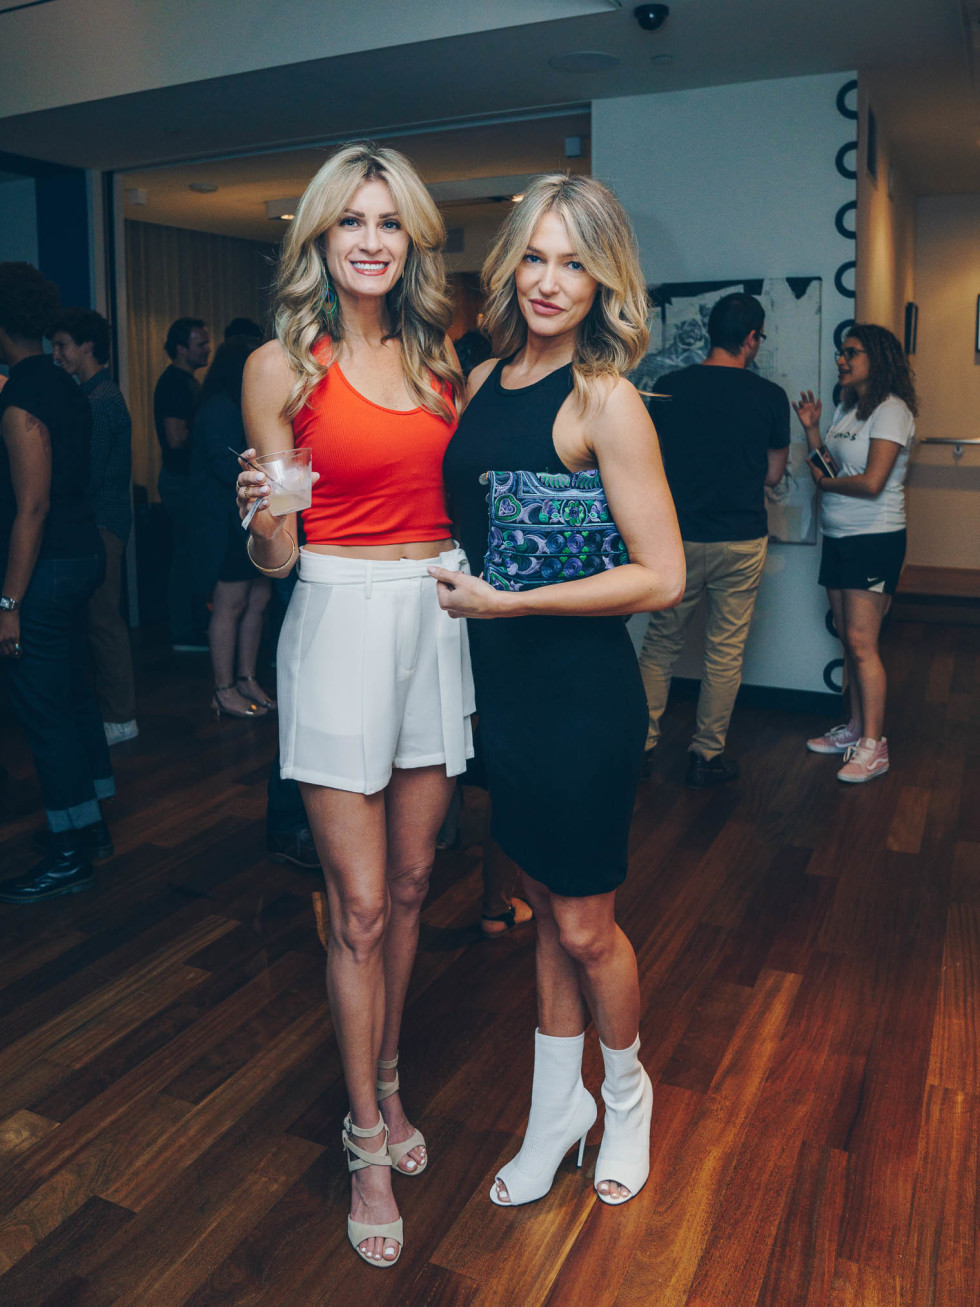 WEST After Hours at DEN Property Group Emily Lottman Melissa Kinsman